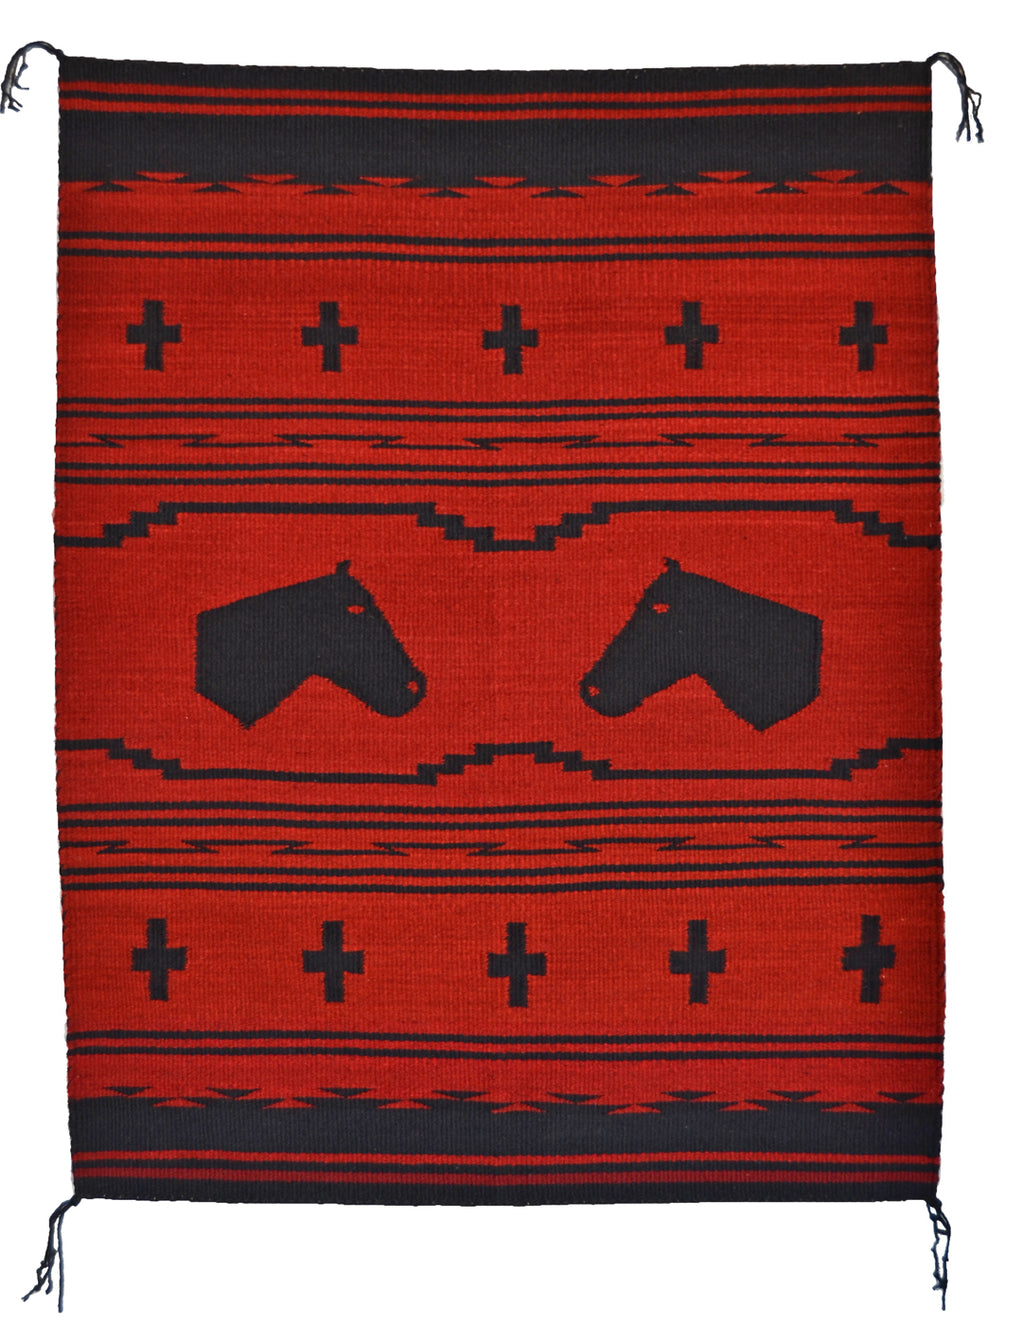 "Horse Pictorial Native American Rug : Churro 1608 : 30"" x 40"" - Getzwiller's Nizhoni Ranch Gallery"